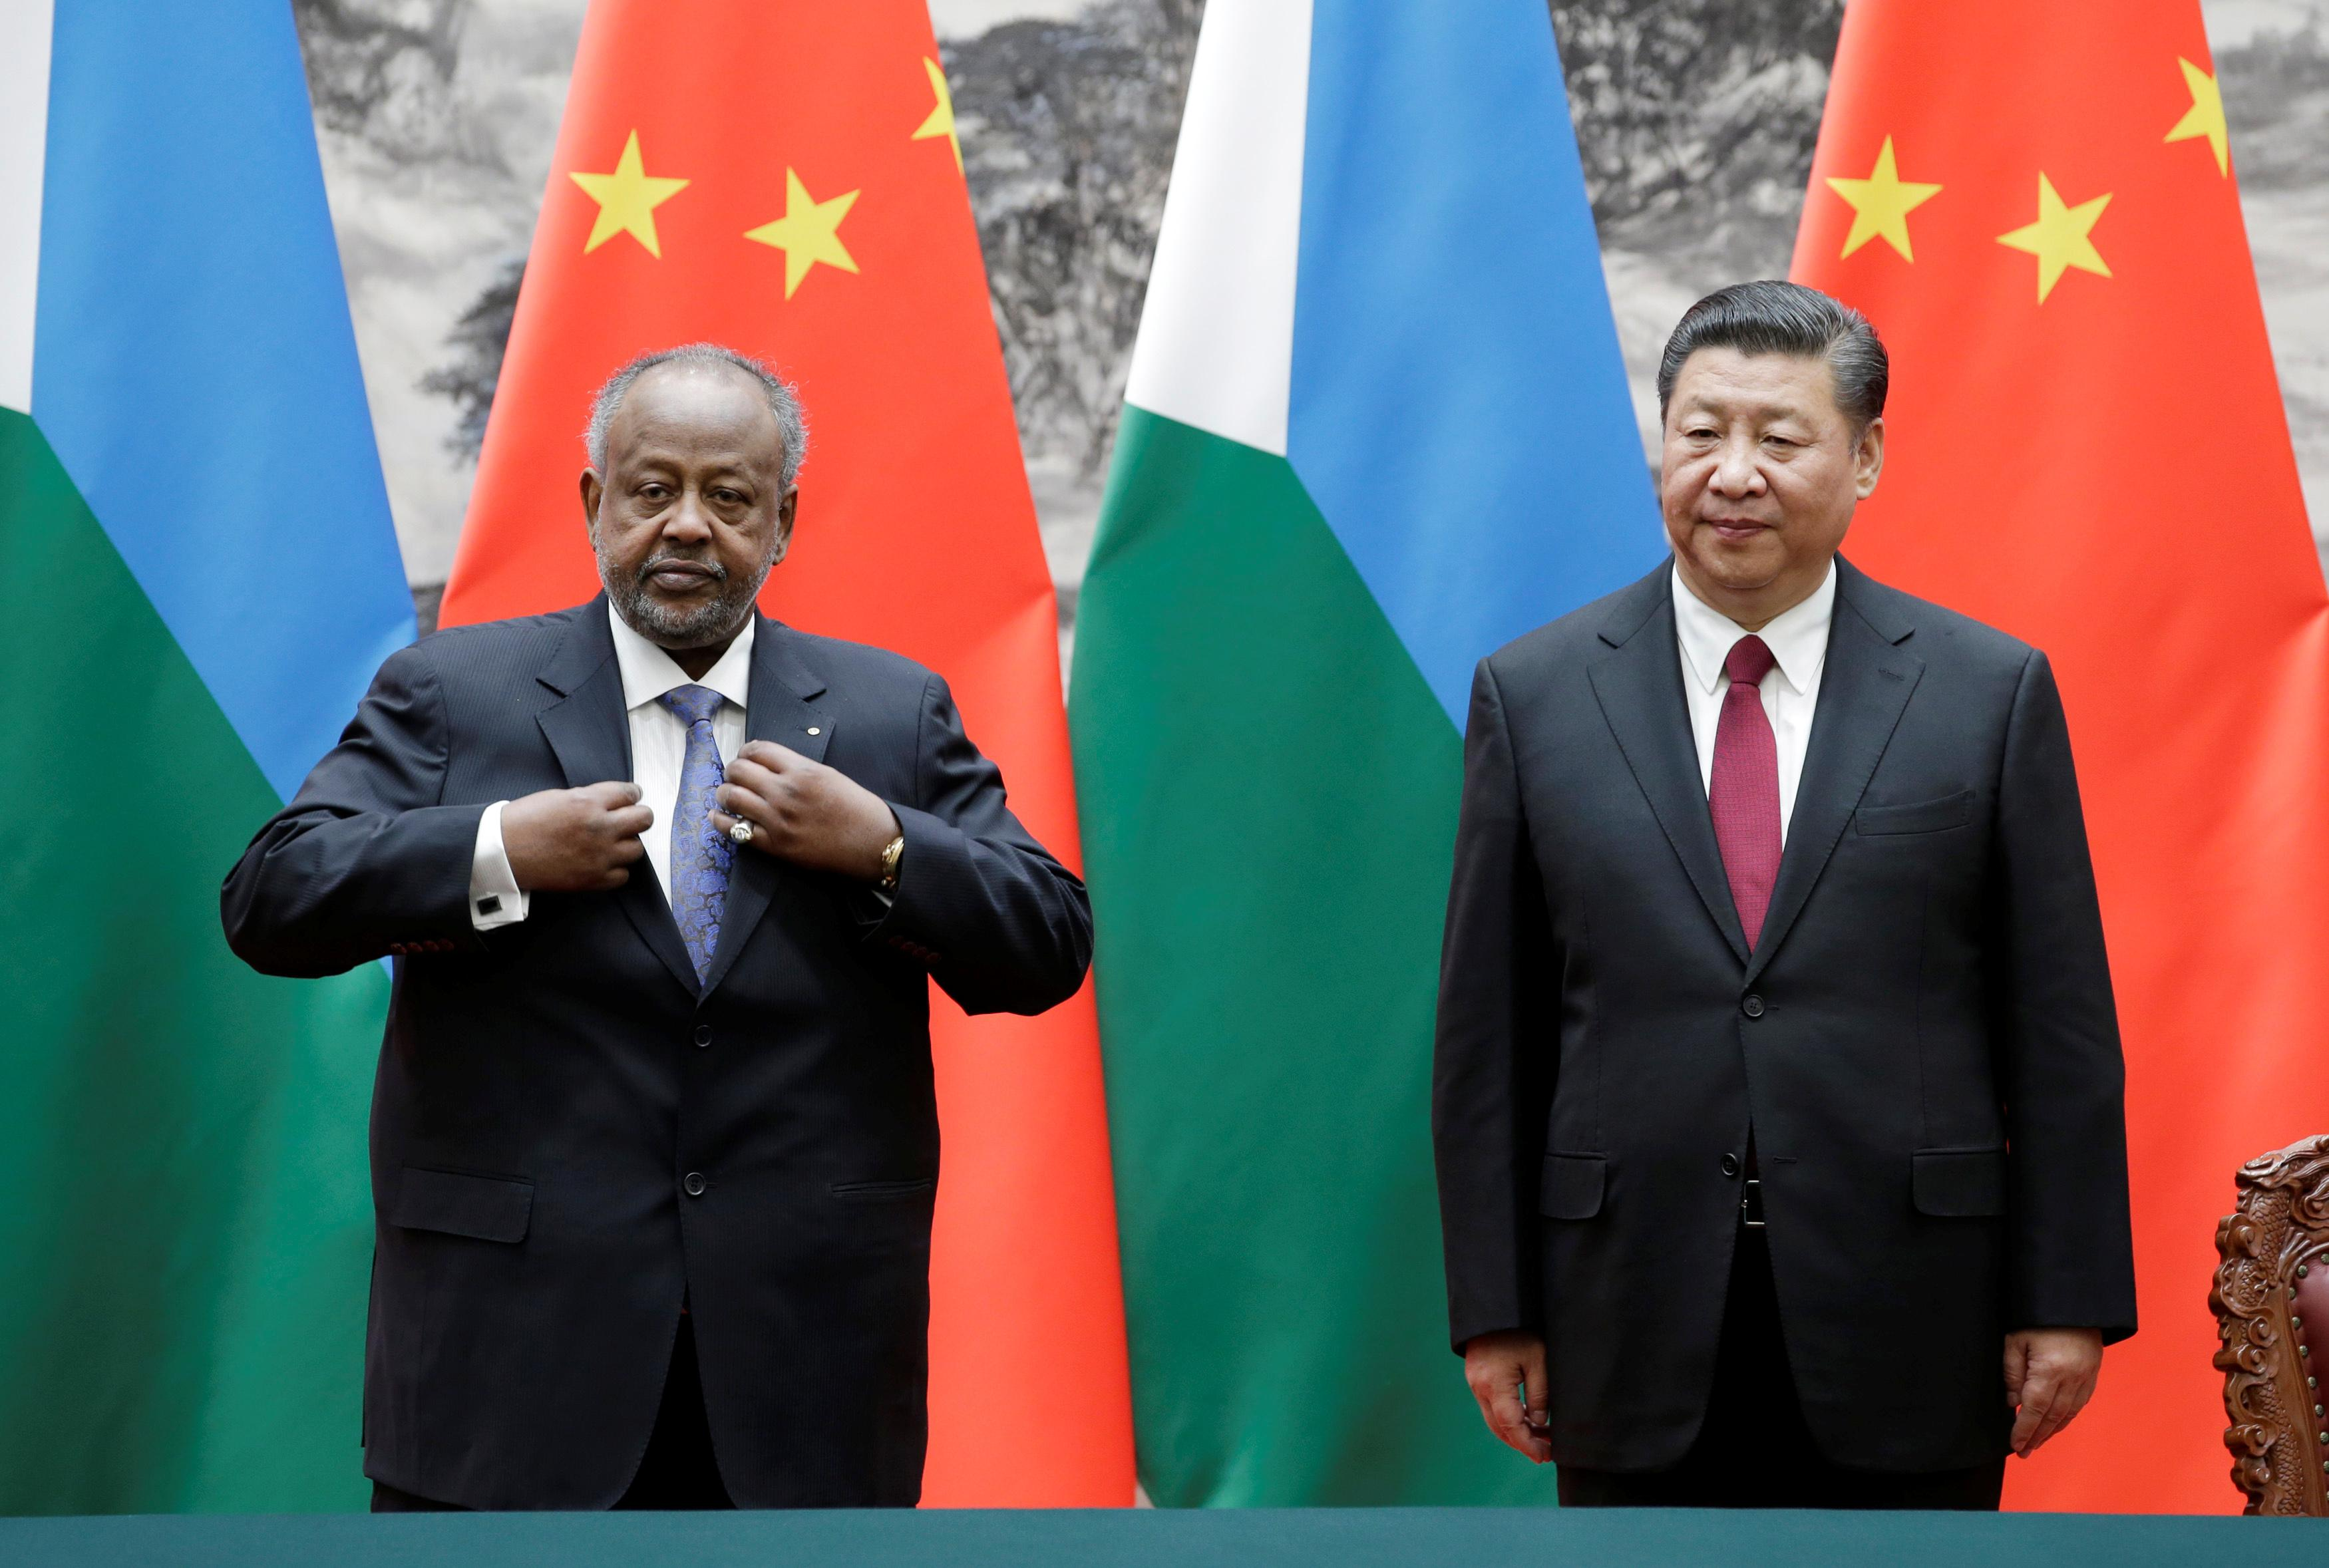 Chinese President Xi Jinping and Djibouti's President Ismail Omar Guelleh attend a signing ceremony at the Great Hall of the People in Beijing, China November 23, 2017. Jason Lee